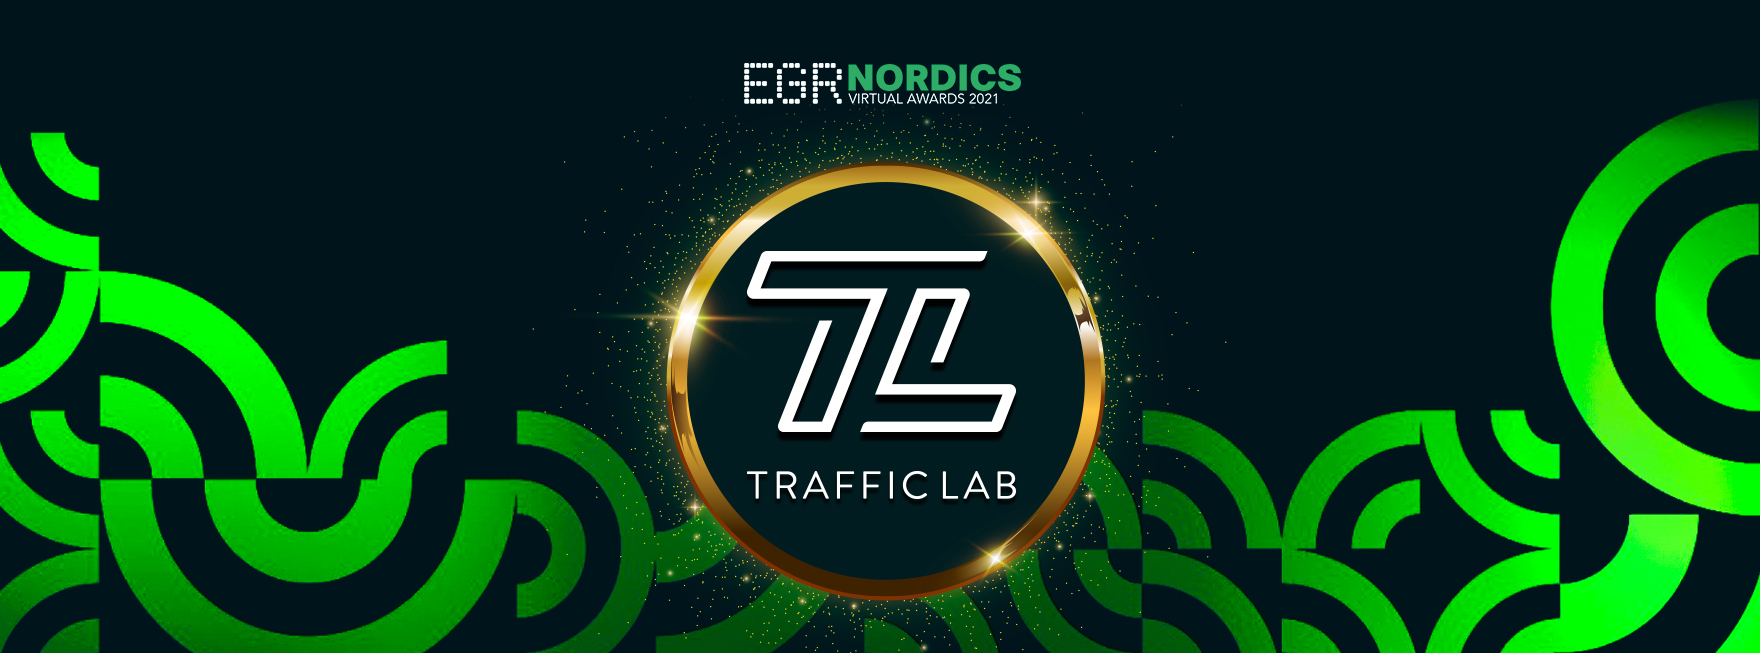 TrafficLab News - Traffic Lab shortlisted for the EGR Nordics Awards 2021!